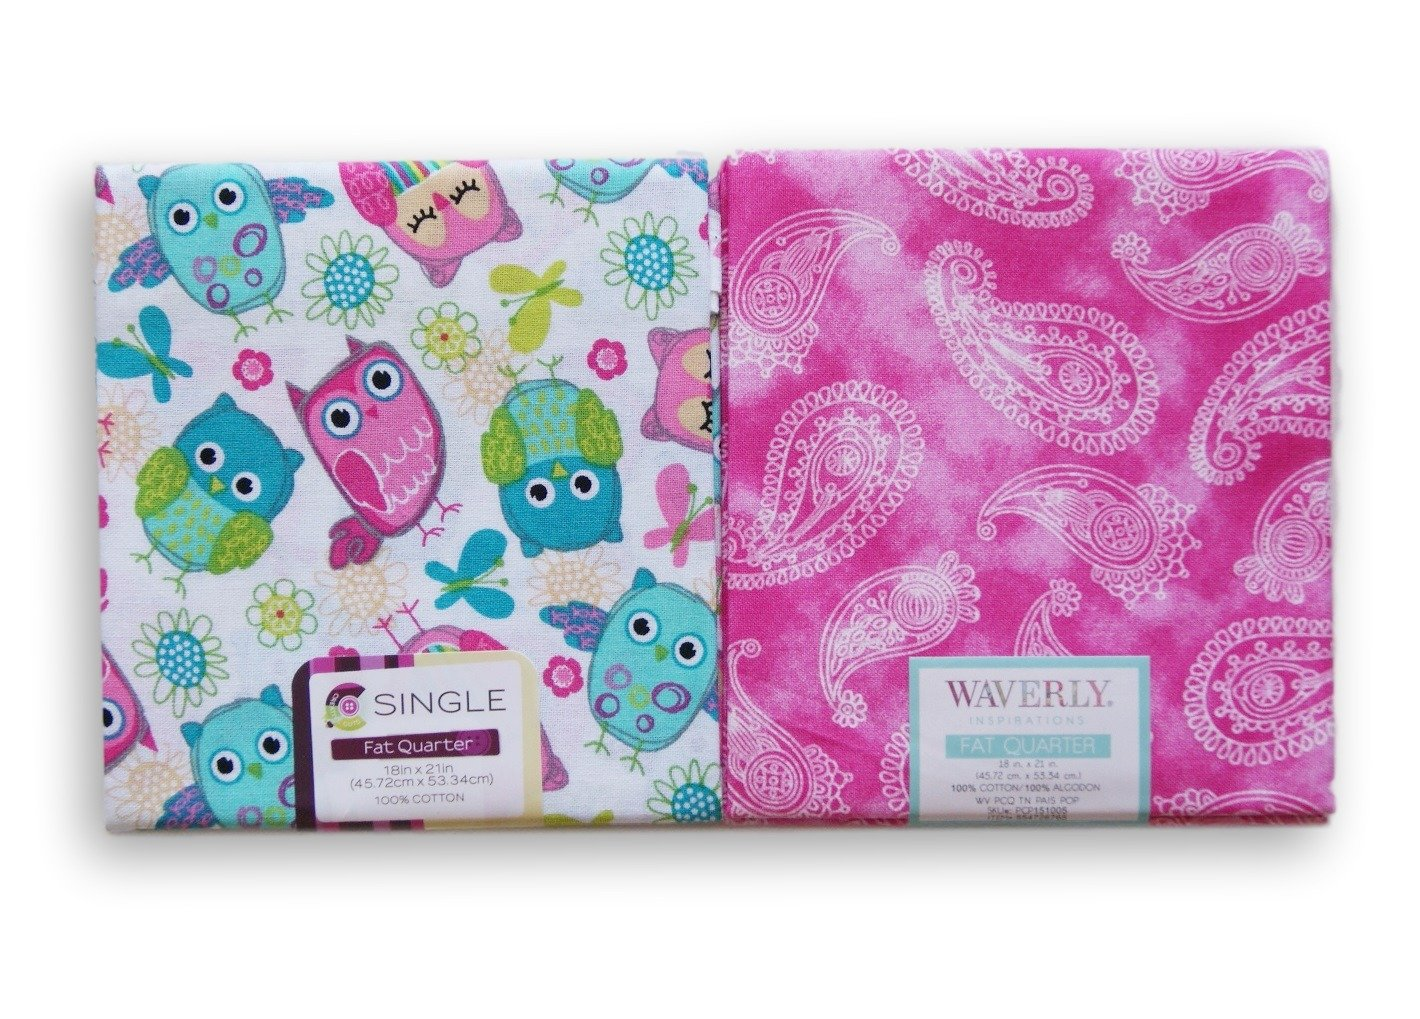 Waverly Inspirations Fat Quarters Bundle - Owls and Pink Paisley 4336995967